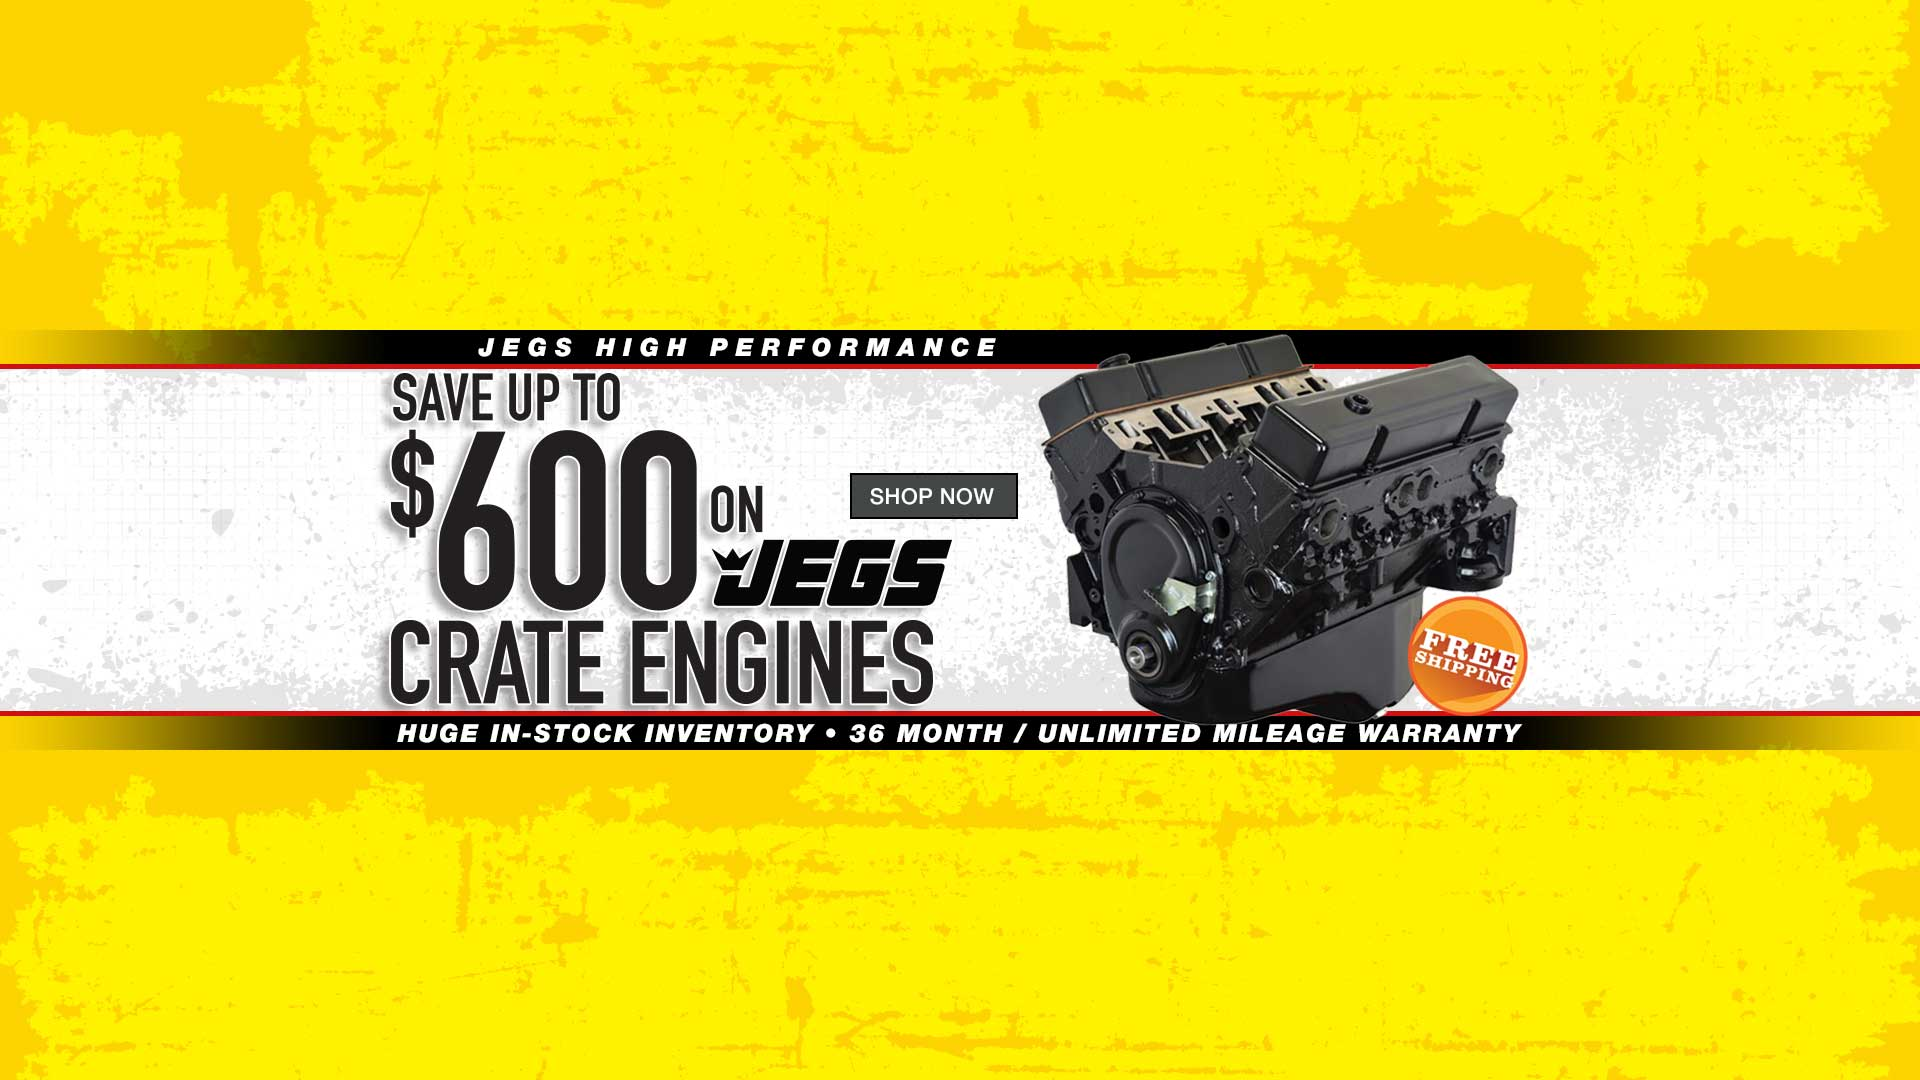 Save up to $600 on JEGS Crate Engines